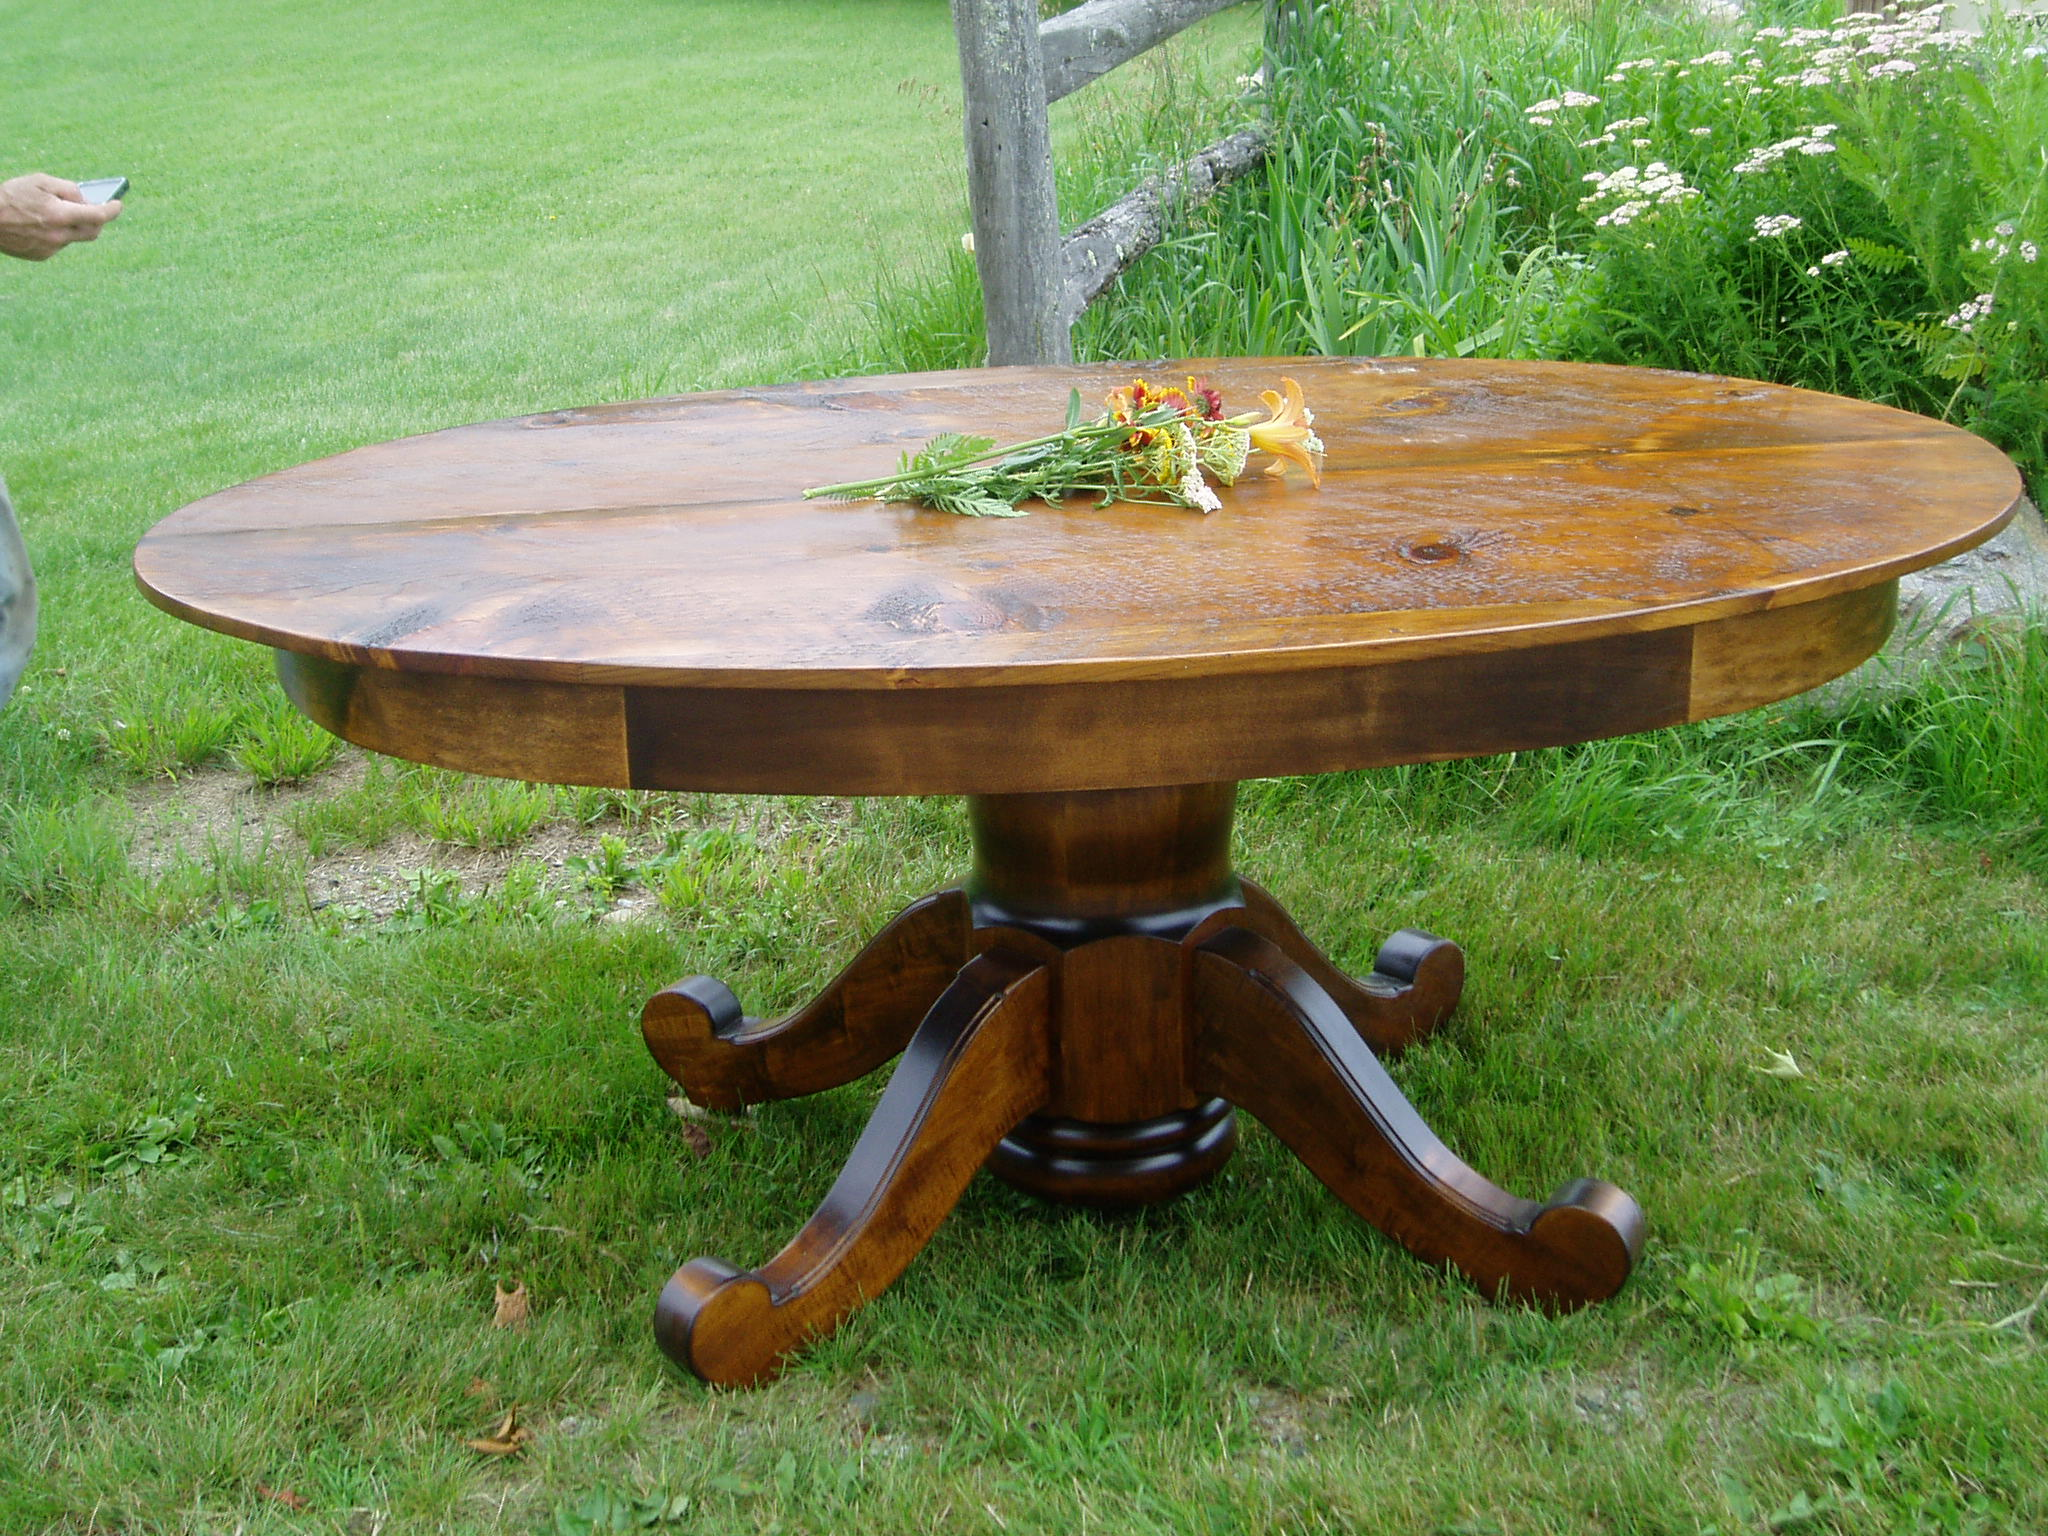 ellipse table #5A (rustic Pine)